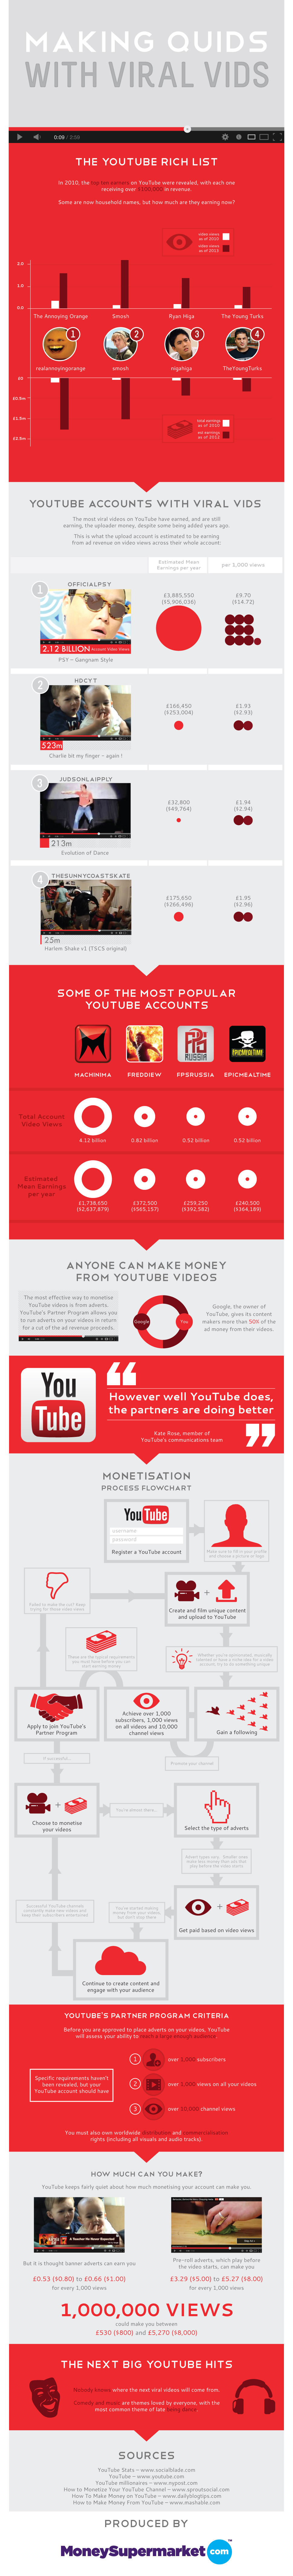 Making Quids With Viral Vids:graphic